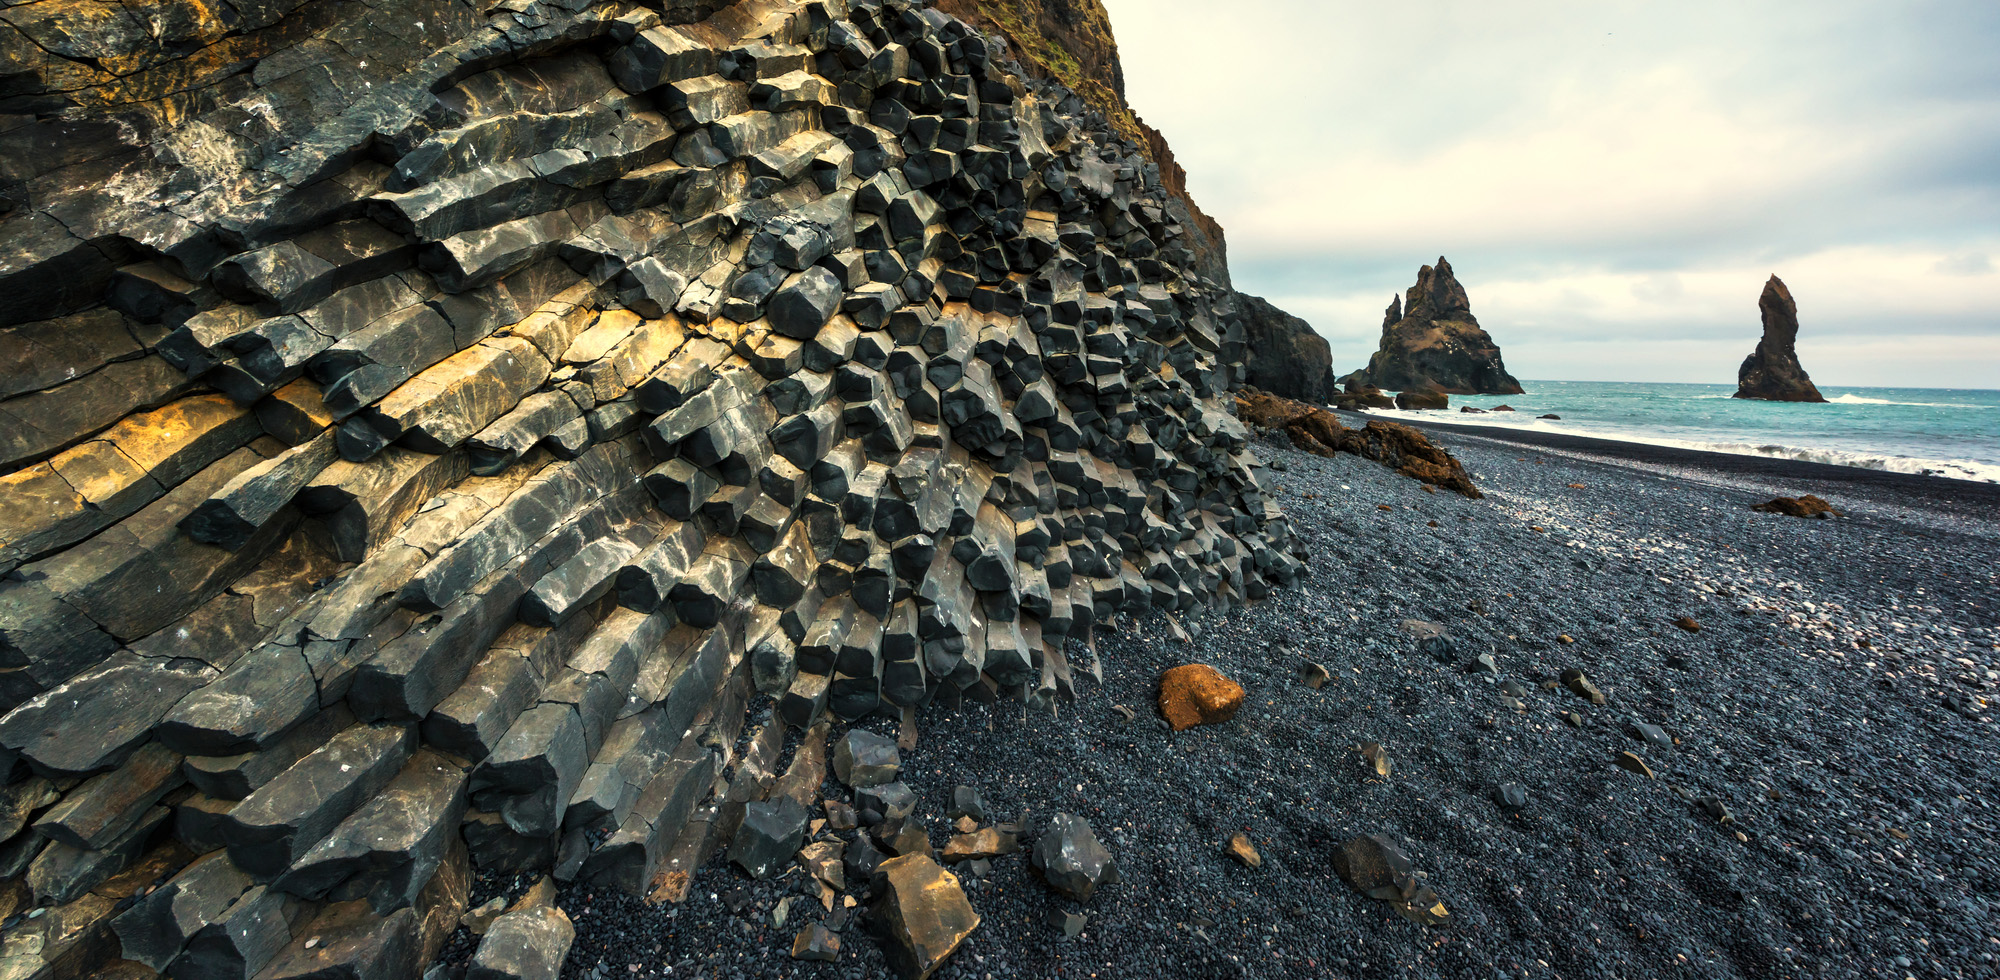 Basalt rock formations-72 ppi